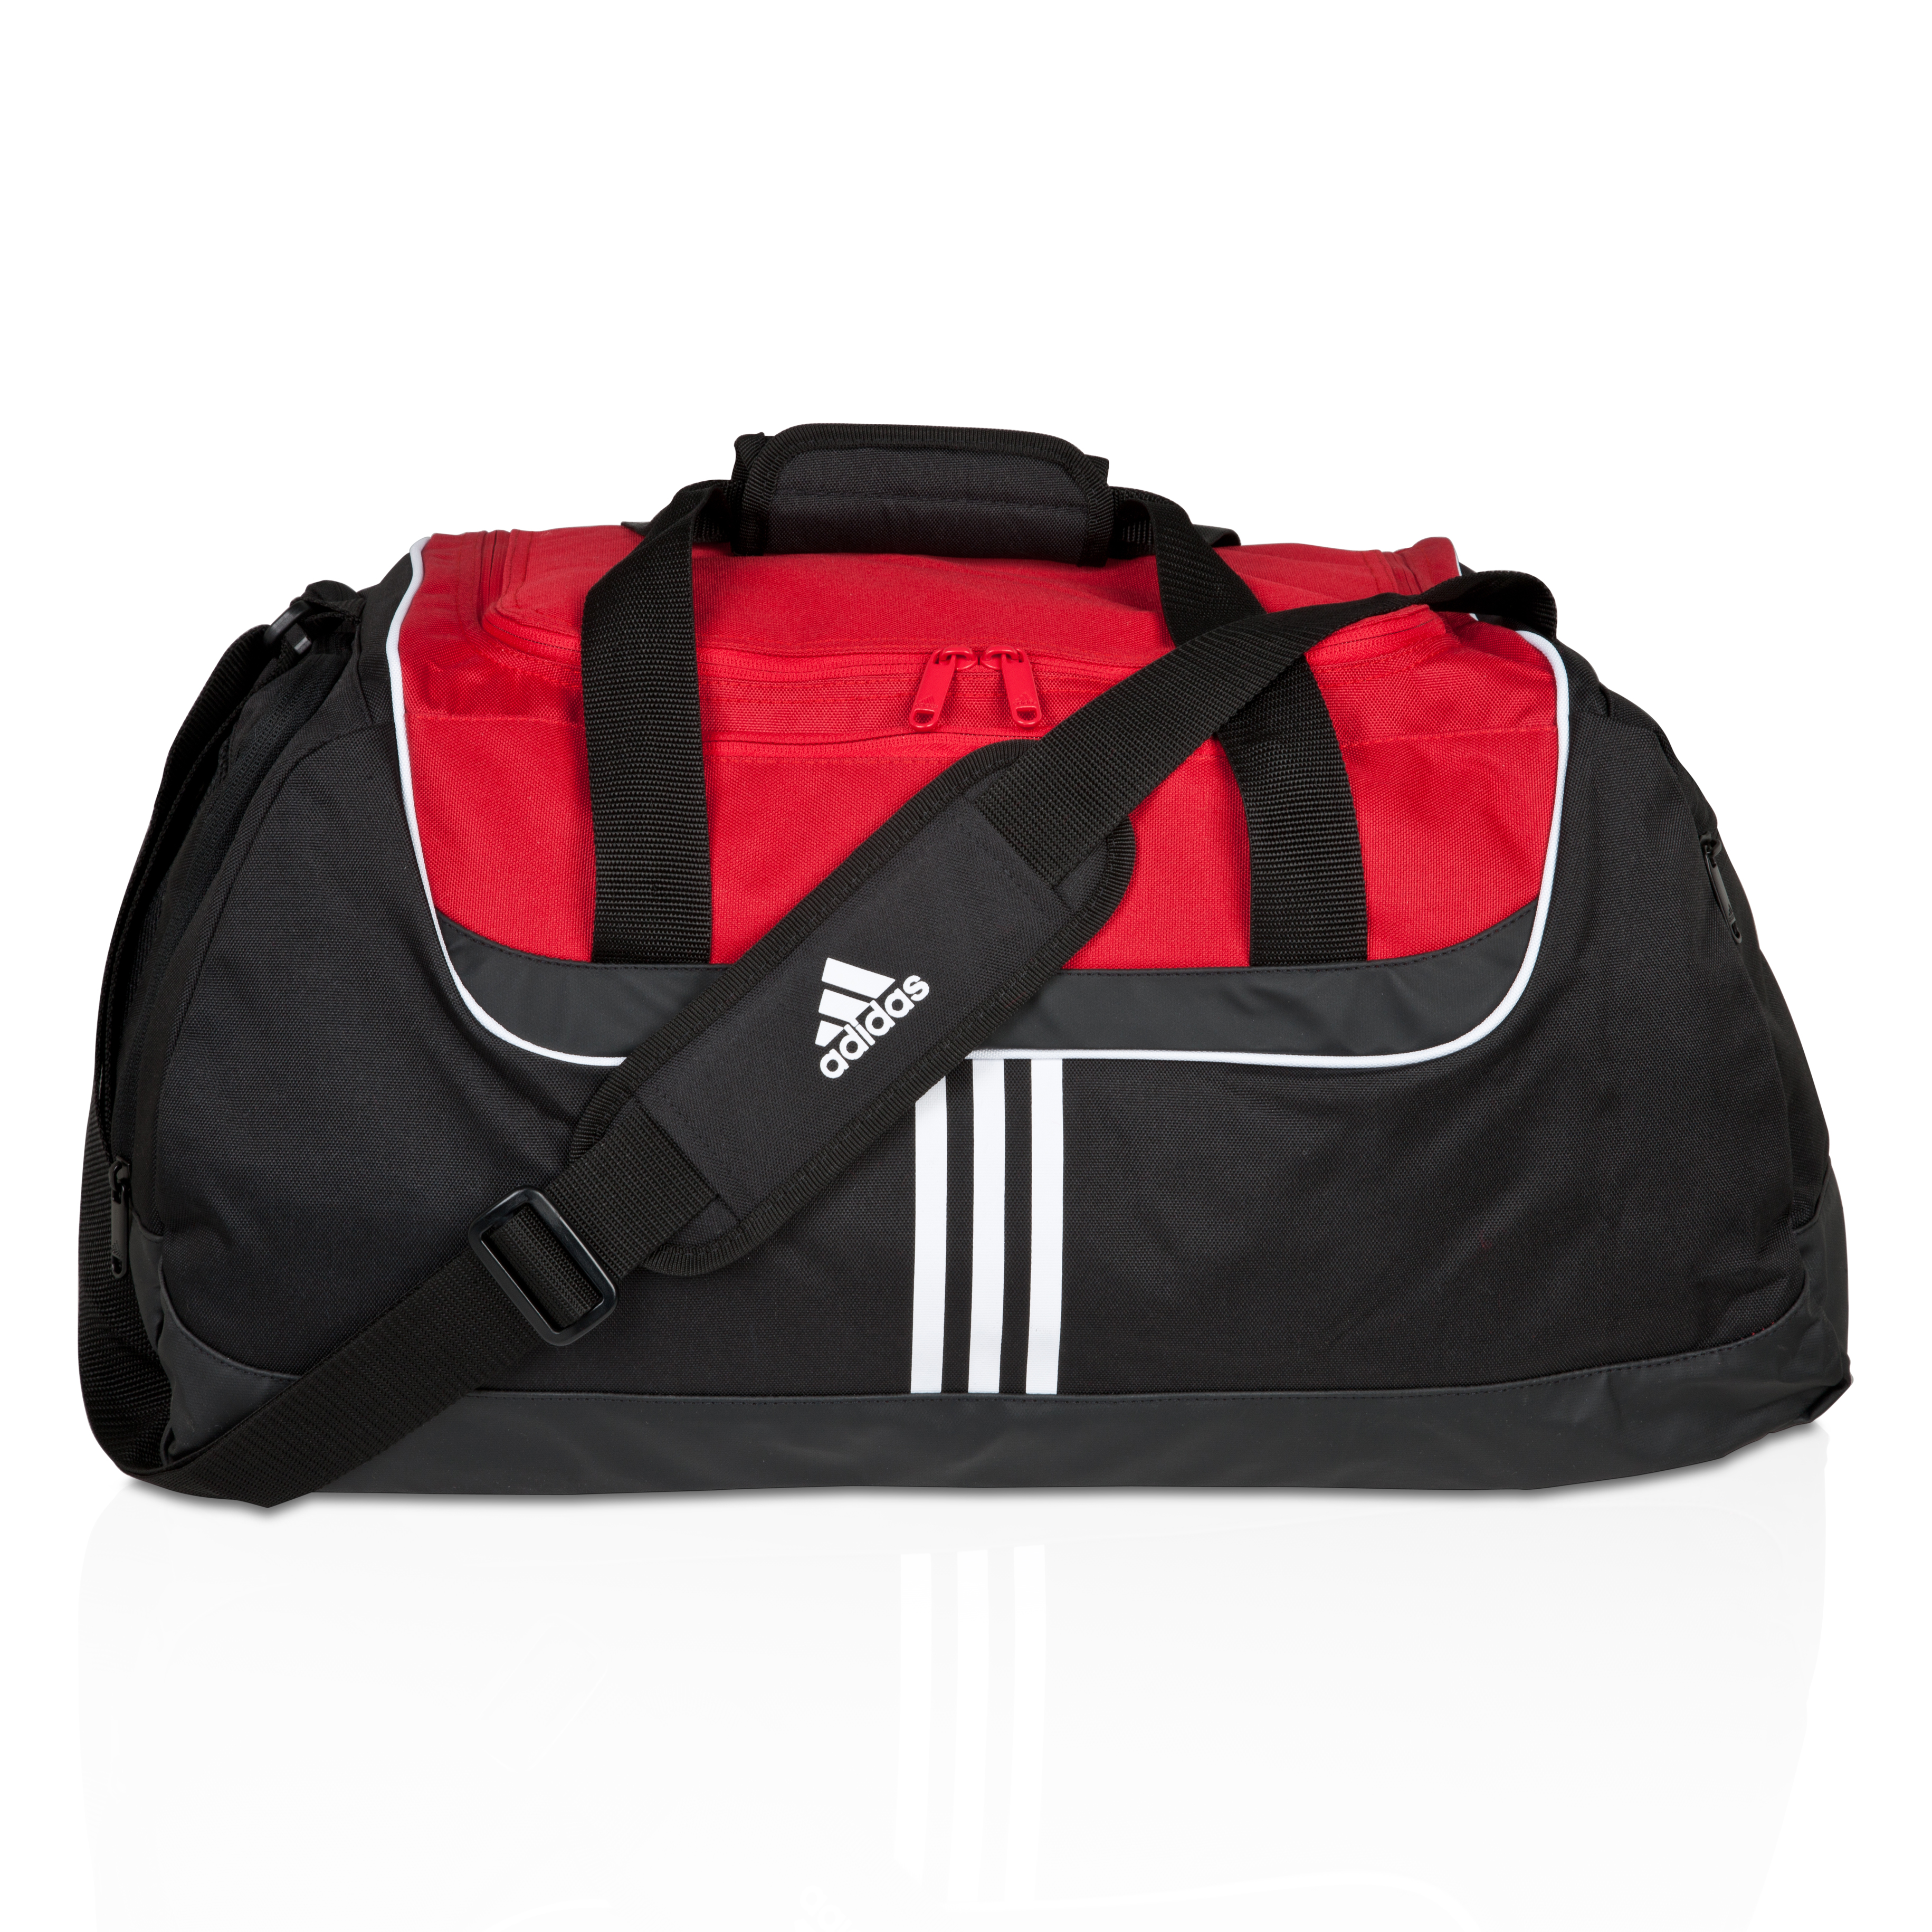 Adidas Tiro Teambag Medium